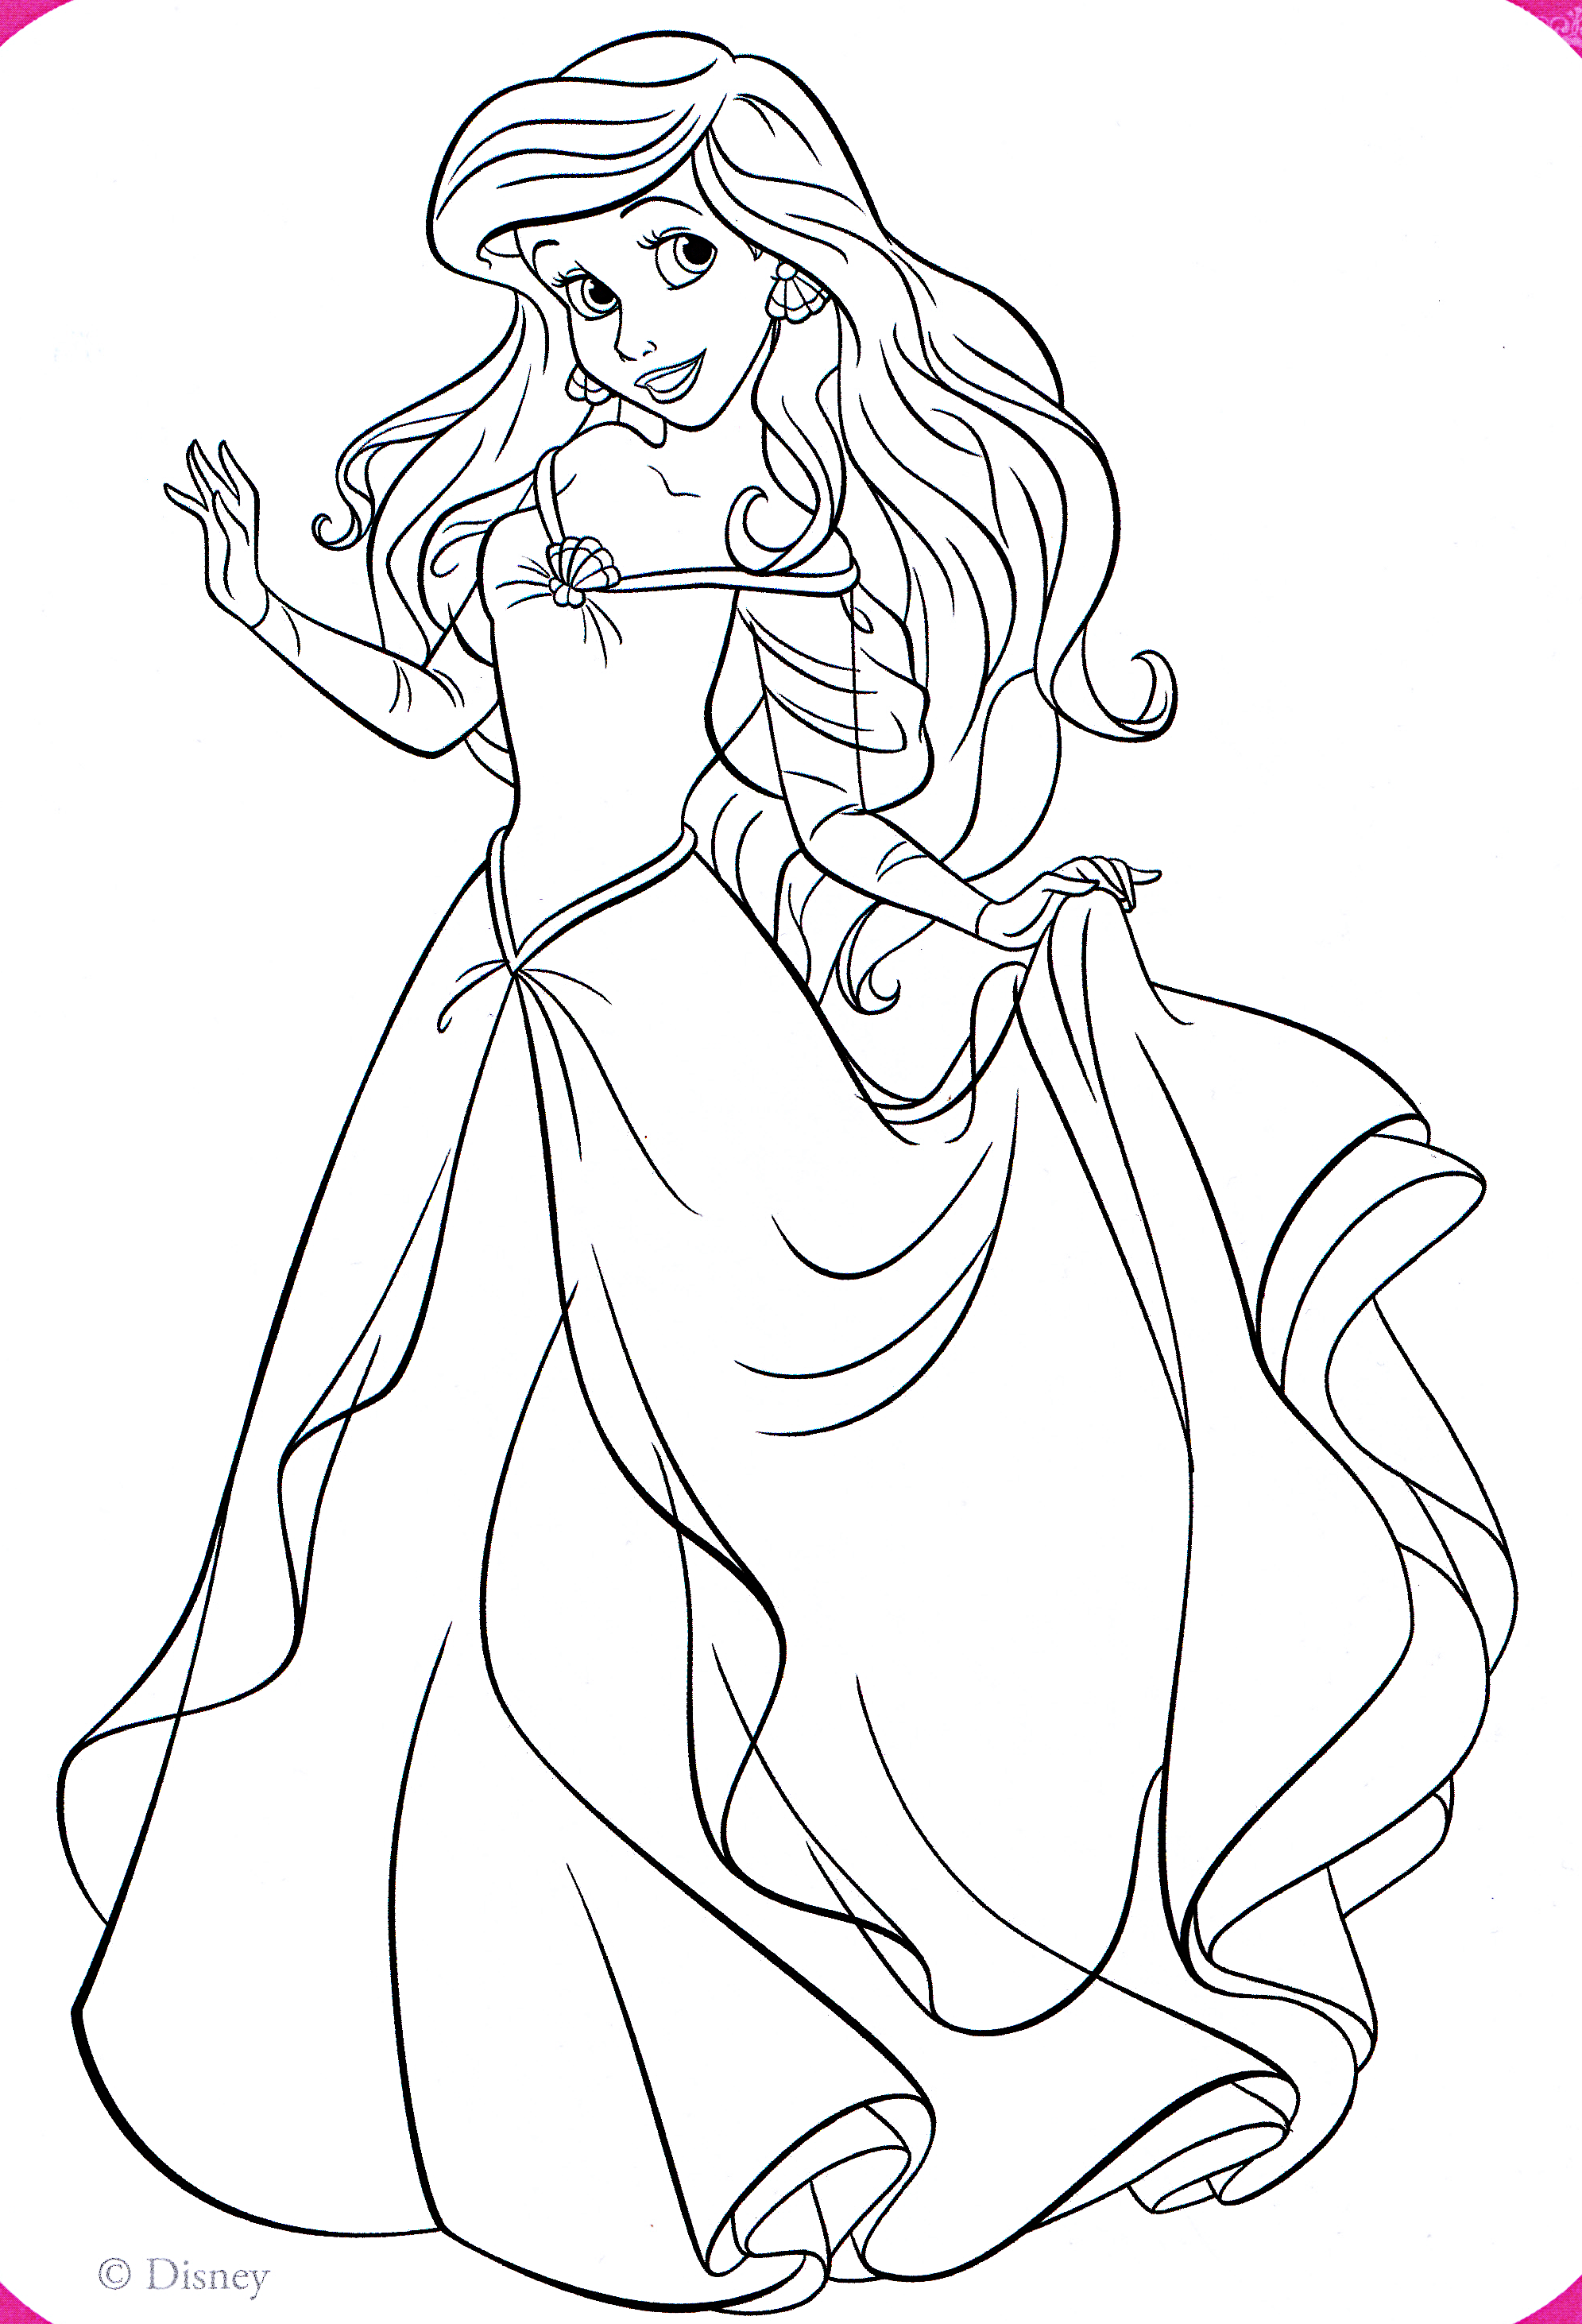 disney princess characters coloring pages - photo#1